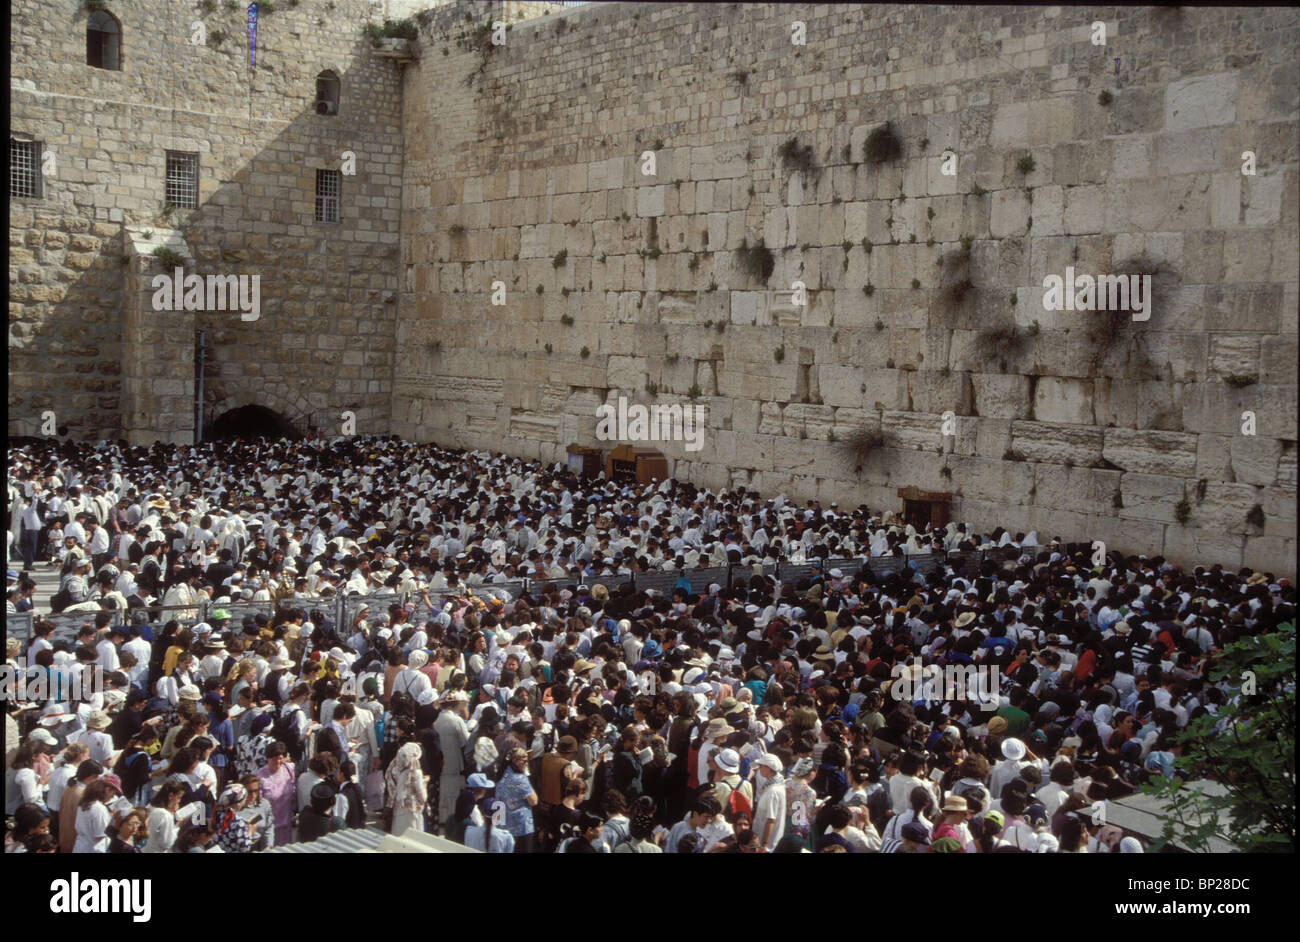 2080. PILGRIMS AT THE WESTERN WALL DURING THE PASSOVER PILGRIMAGE - Stock Image